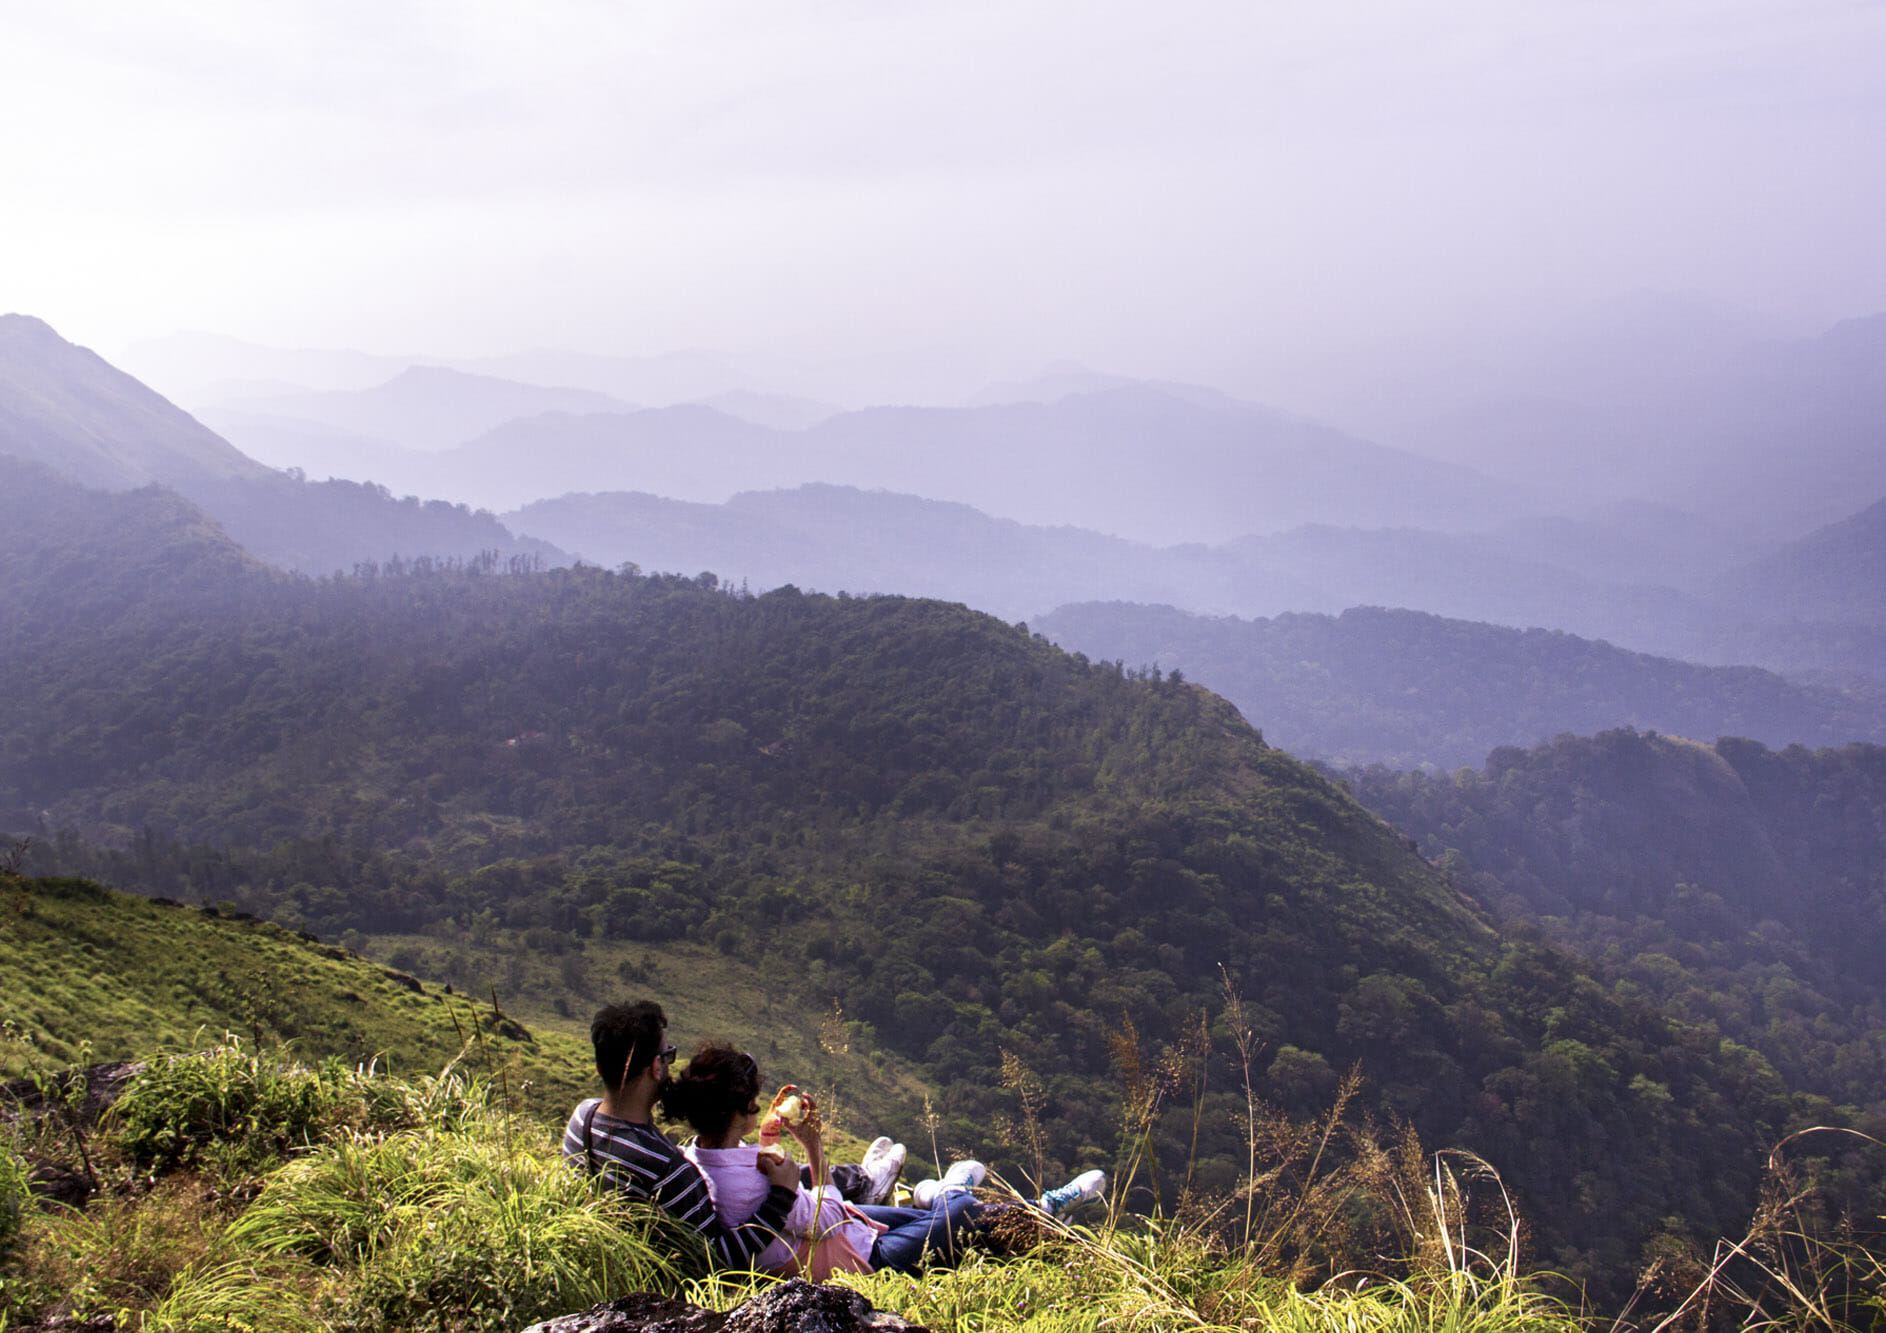 young-couple-at-top-of-a-mountain-and-enjoying-the-view-of-valley